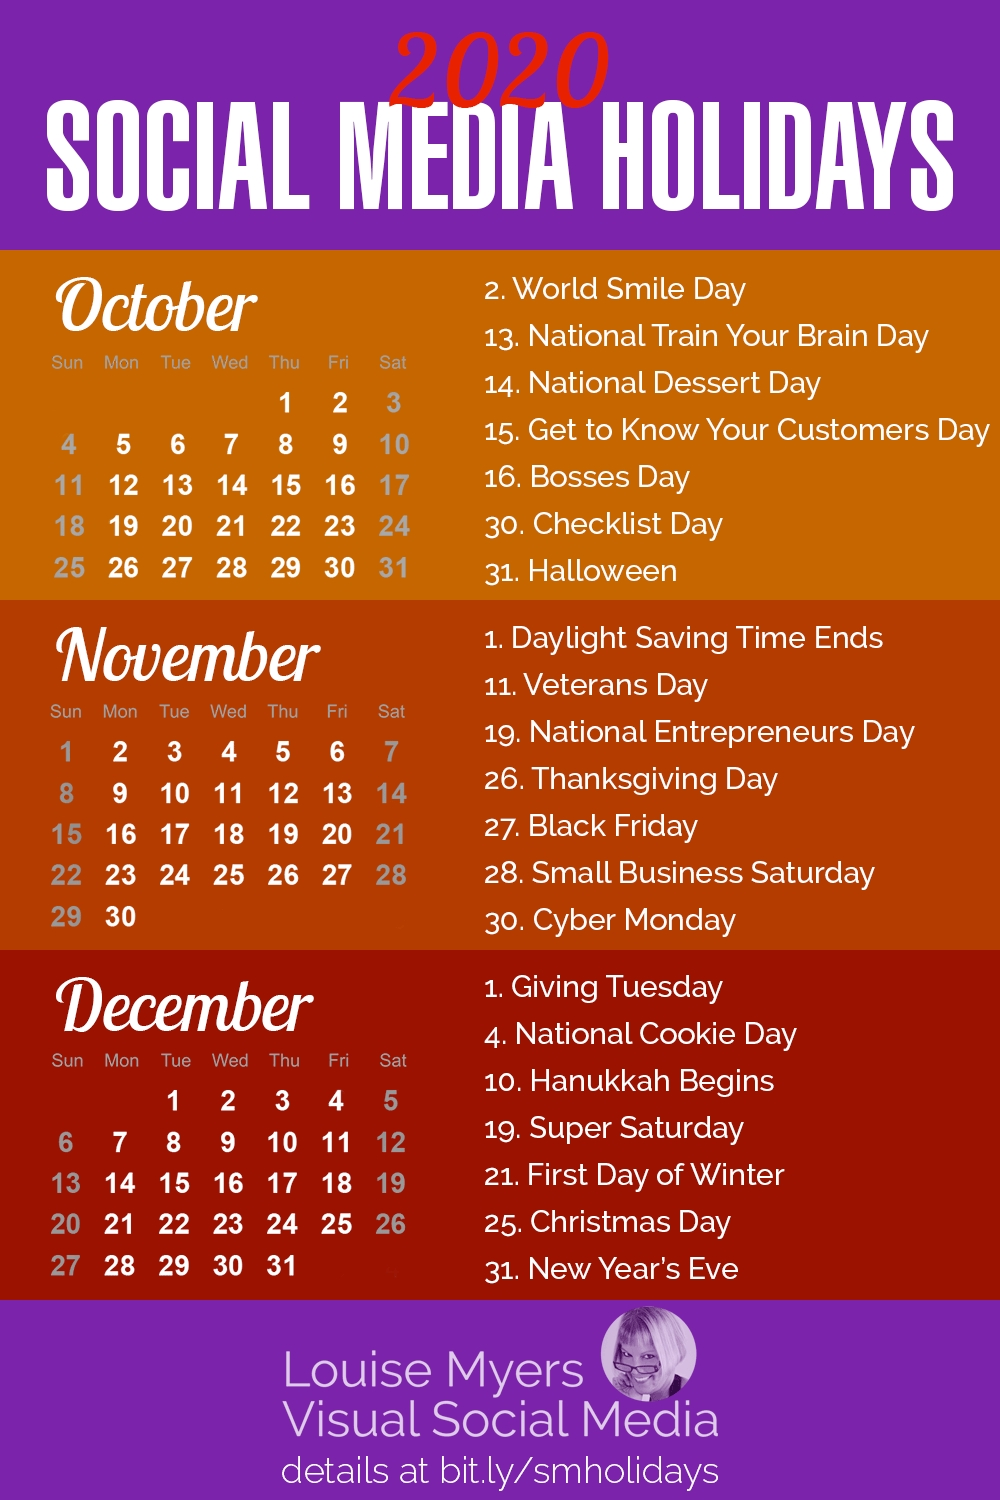 84 Social Media Holidays You Need In 2020: Indispensable! for Special Days For 2020 Calender